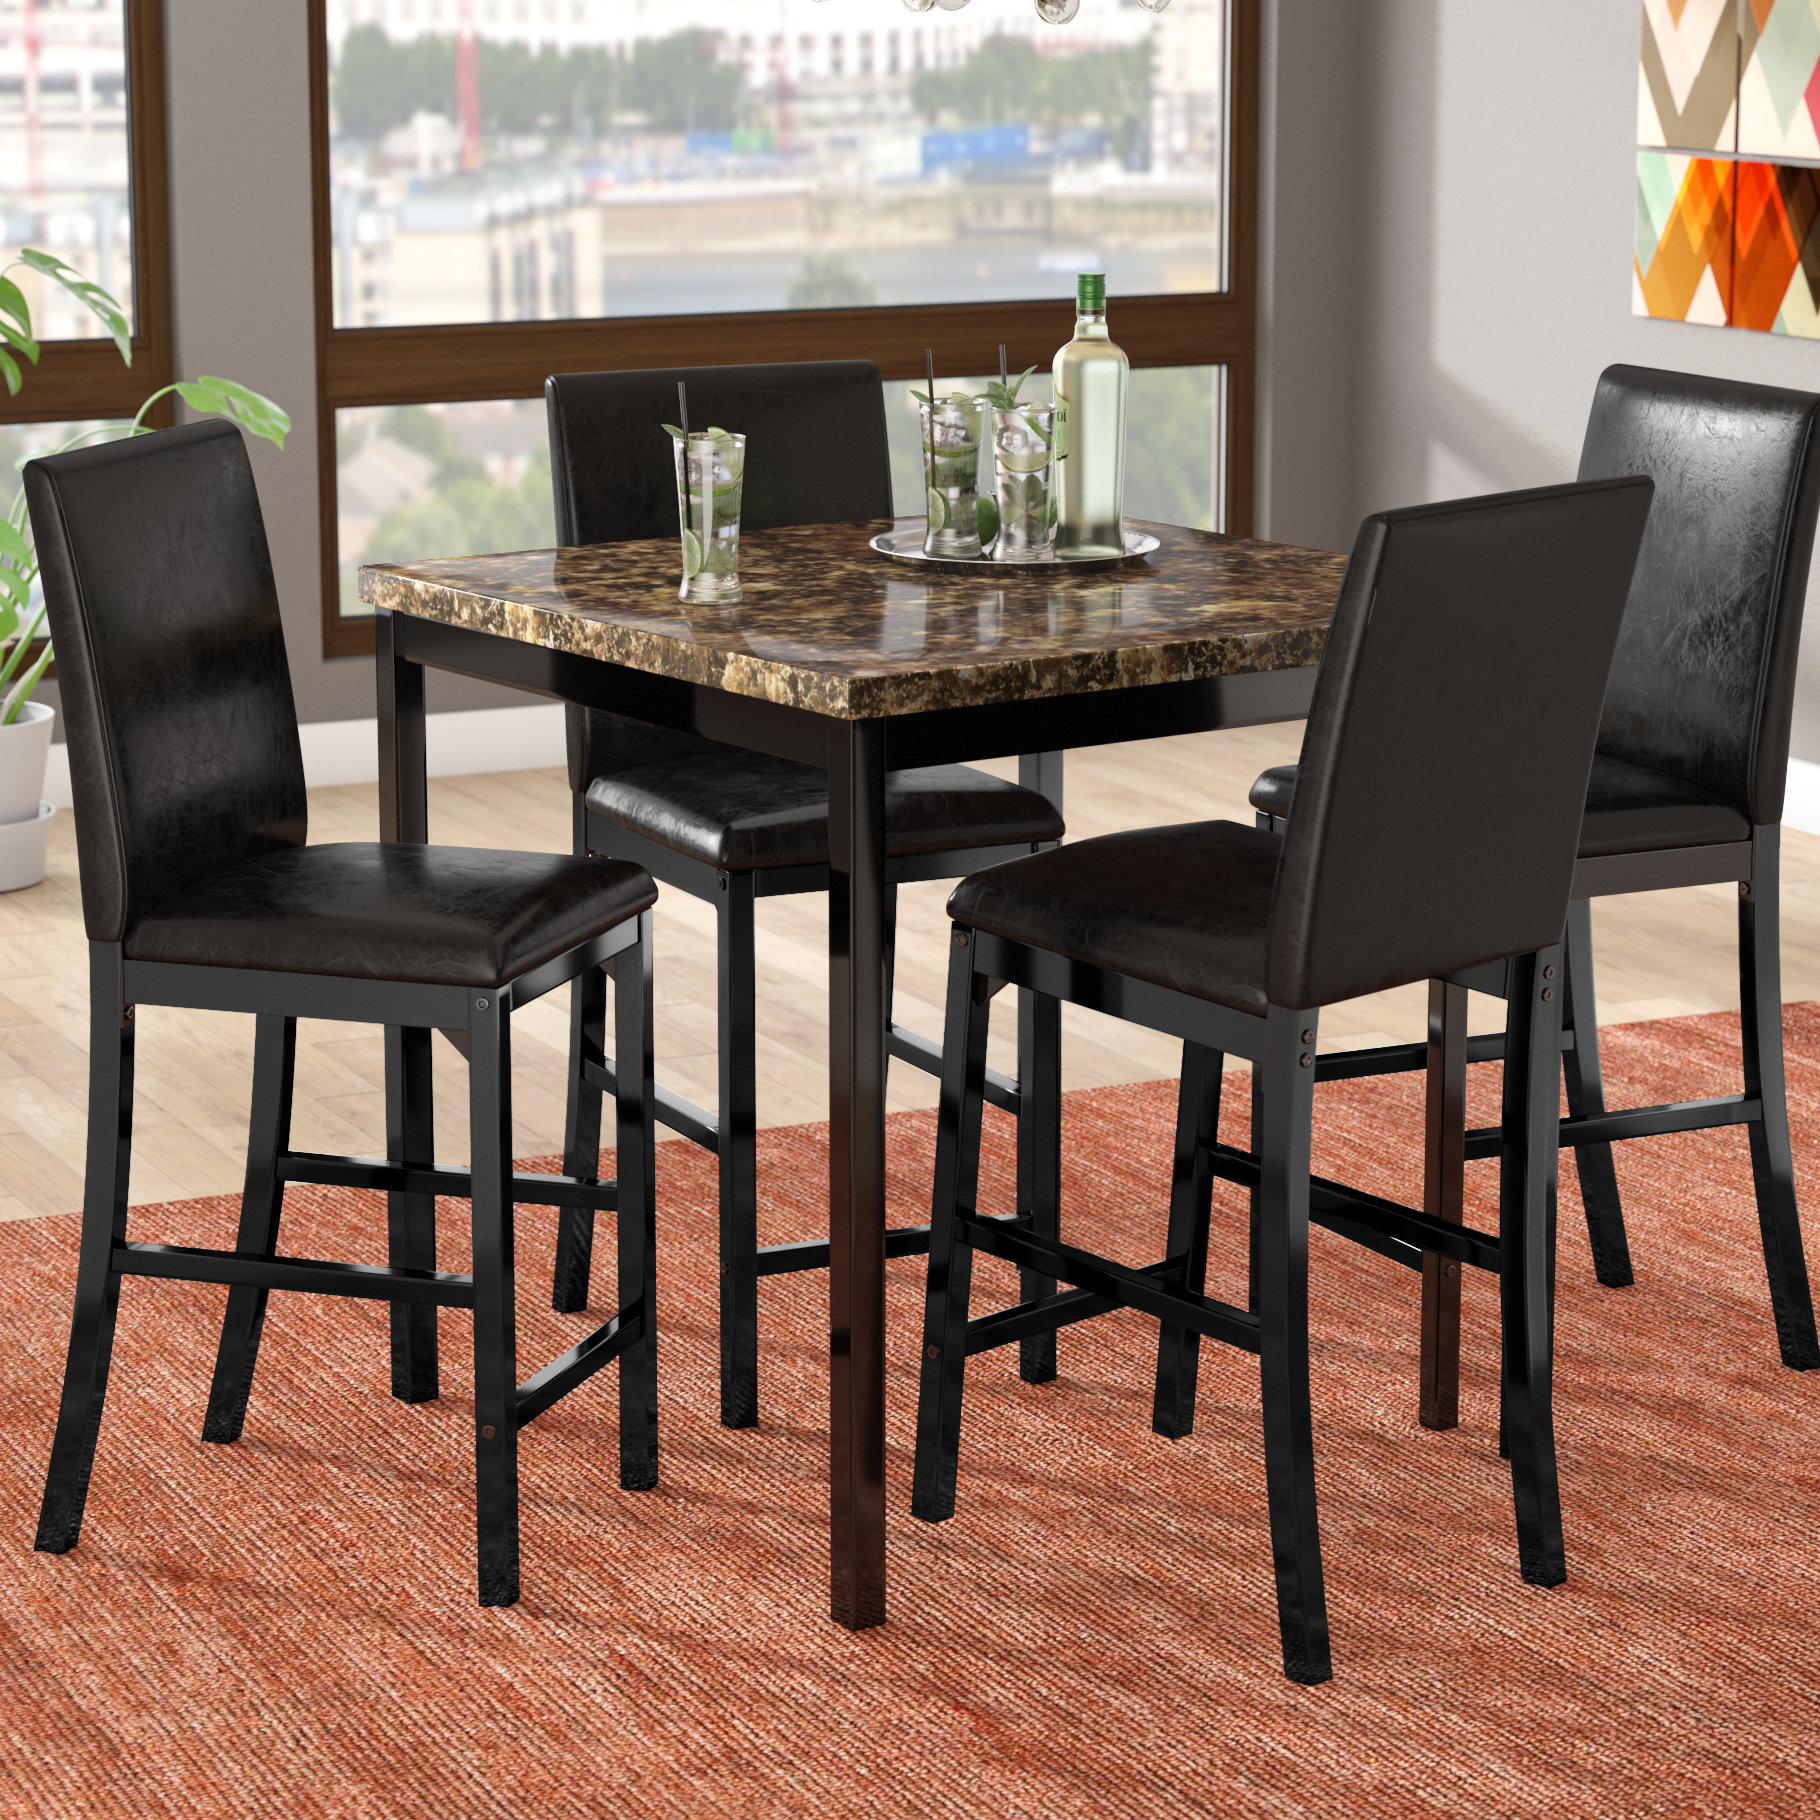 Della 5 Piece Dining Set Intended For 2017 Noyes 5 Piece Dining Sets (View 8 of 20)